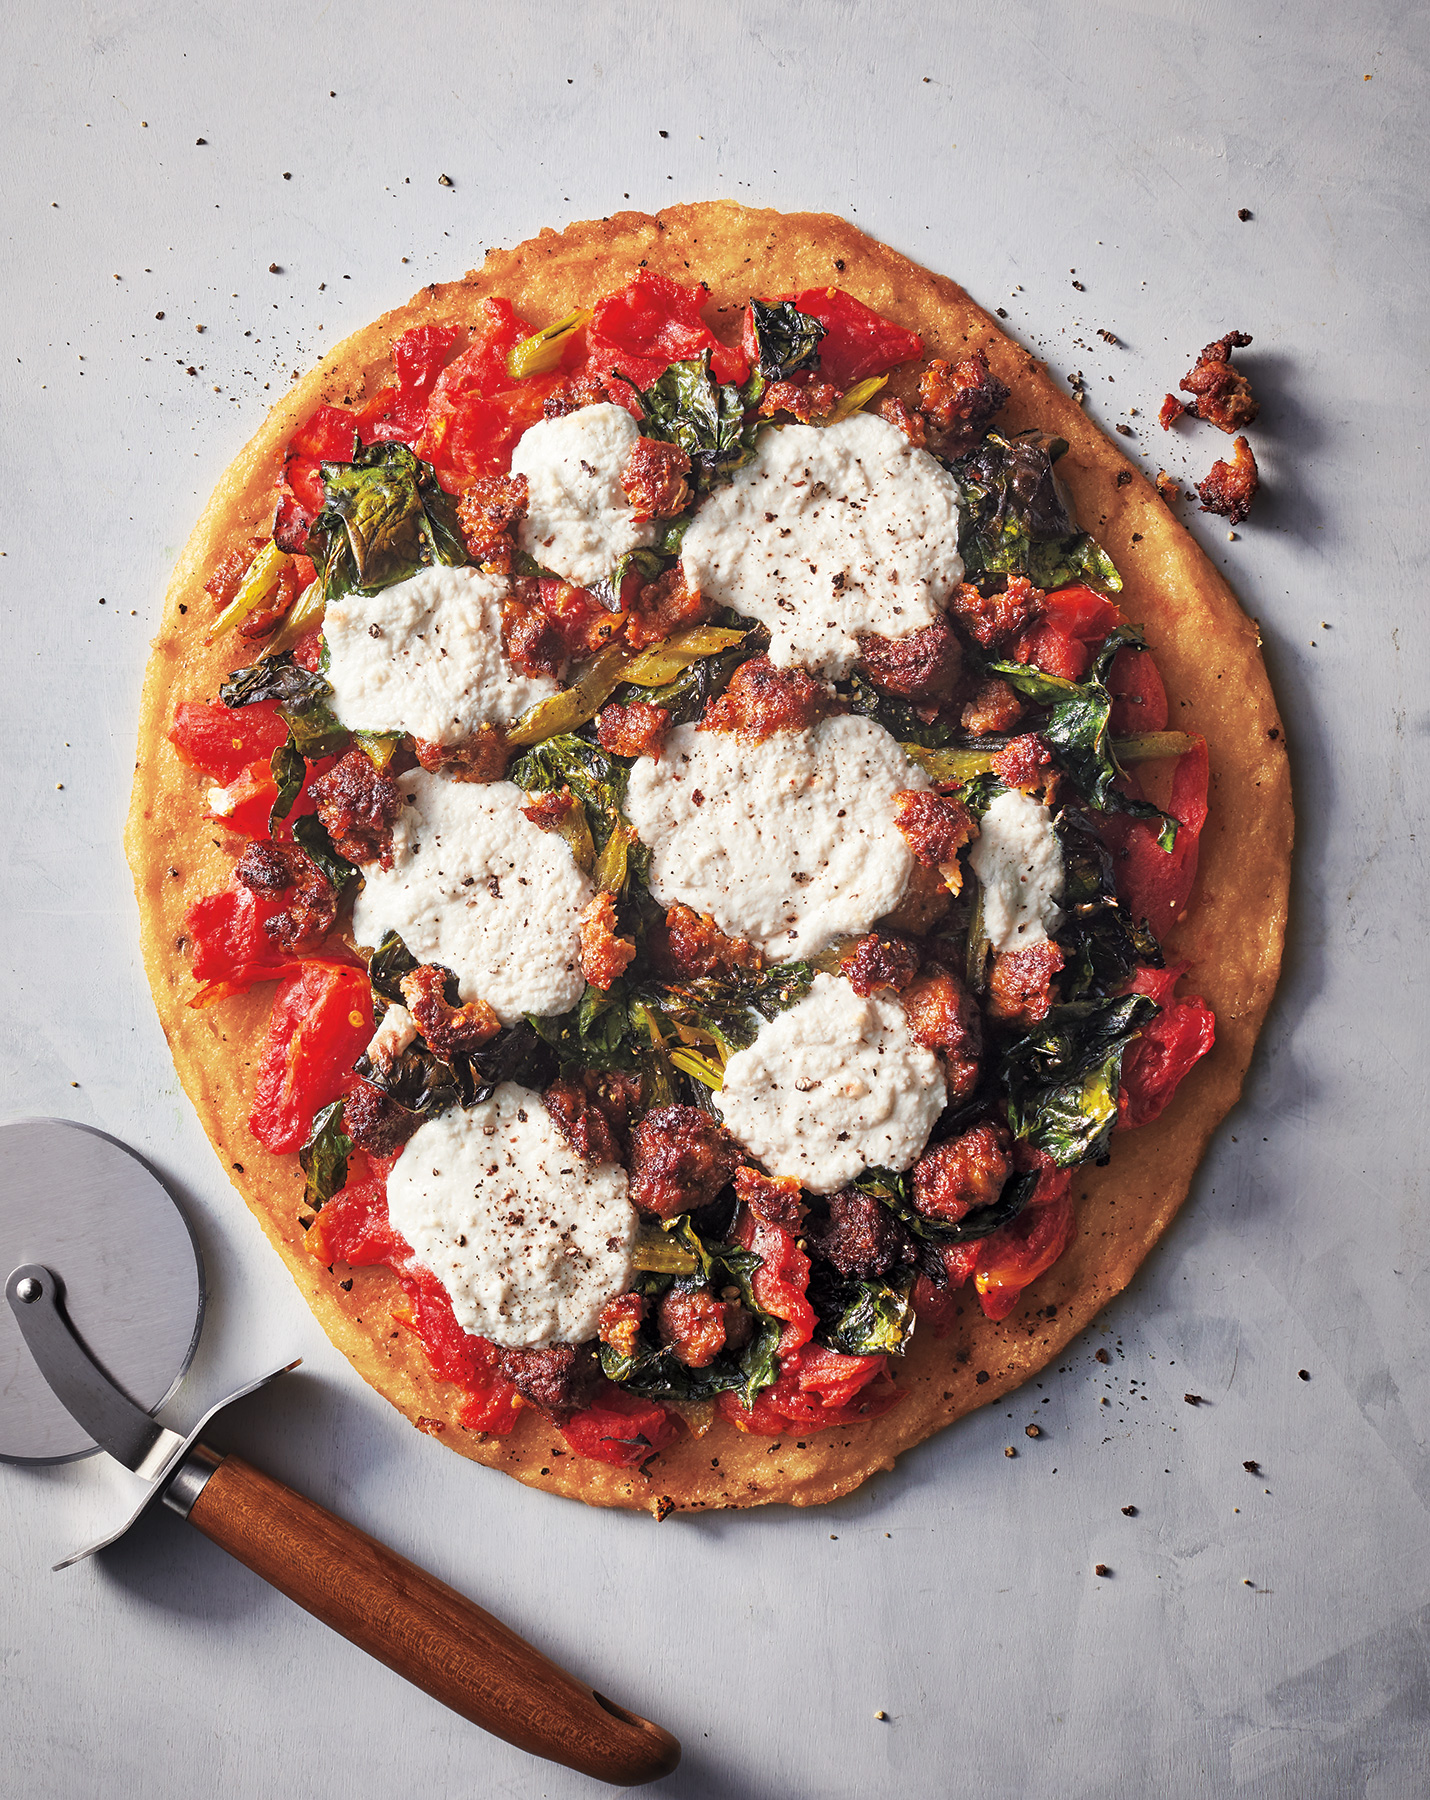 Easy Dinner Recipes: Polenta Pizza With Sausage, Swiss Chard, and Ricotta